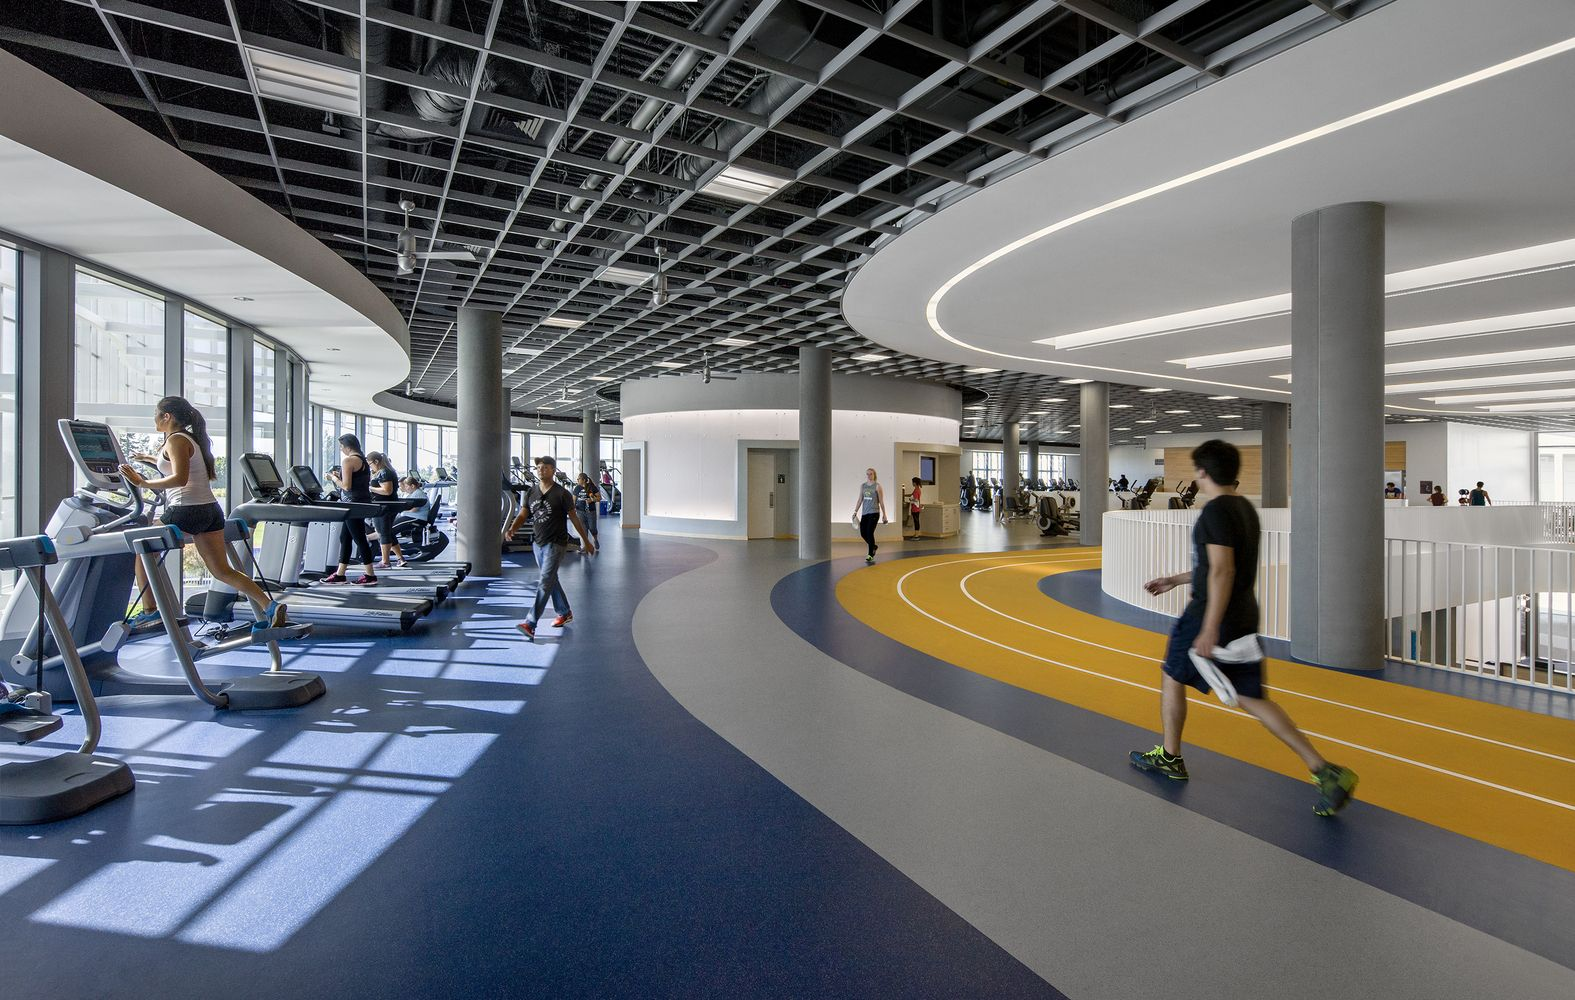 Gallery Of Uc Riverside Student Recreation Center Expansion Cannon Design 10 University Of California Riverside Recreation Centers Gym Interior